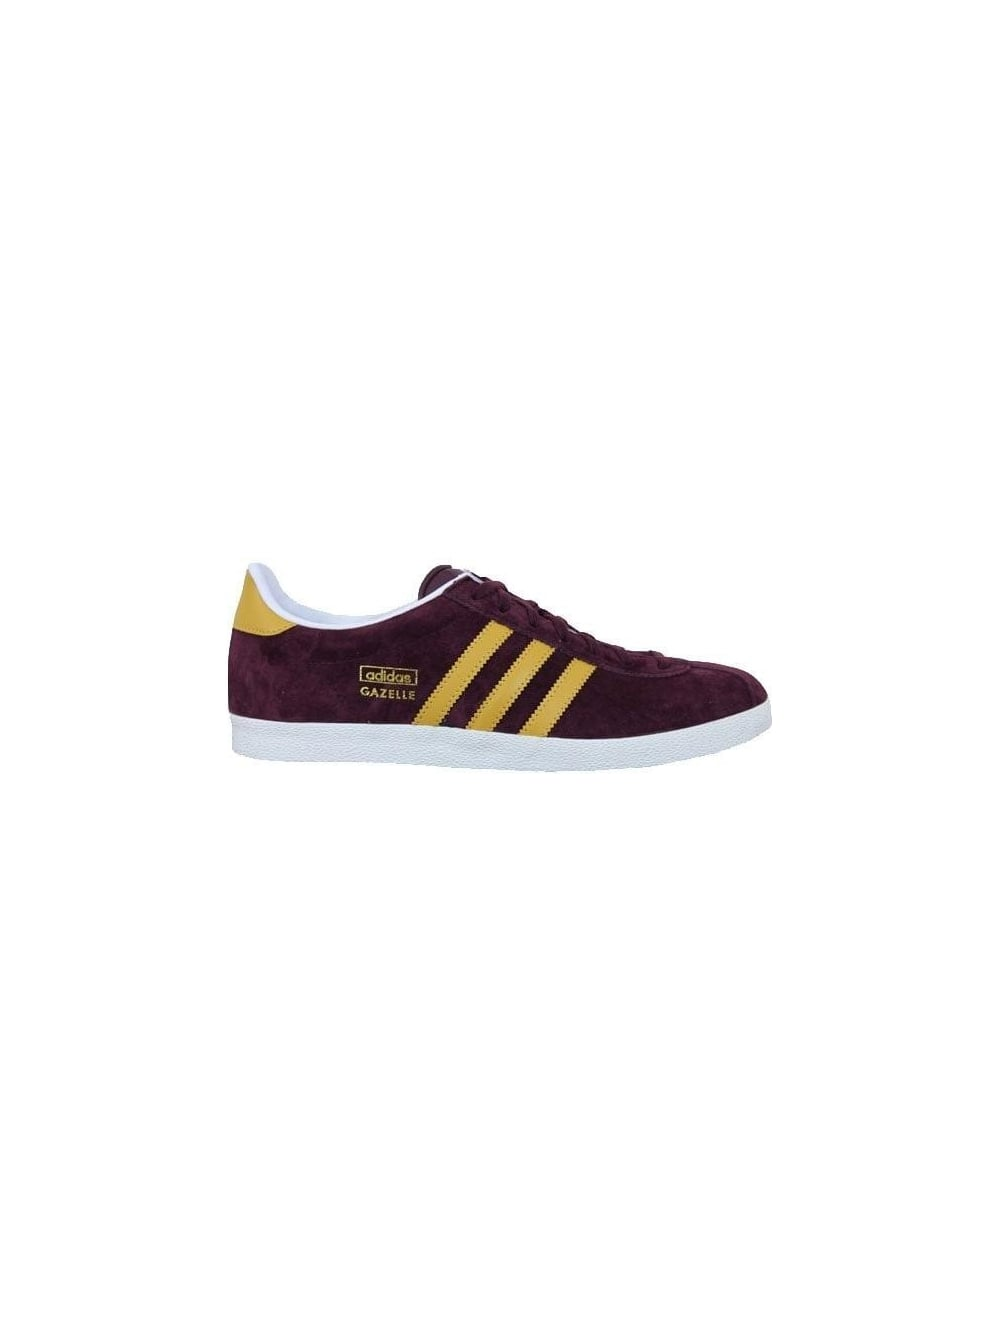 separation shoes 7a920 533cc Gazelle OG Trainers - Maroon Gold